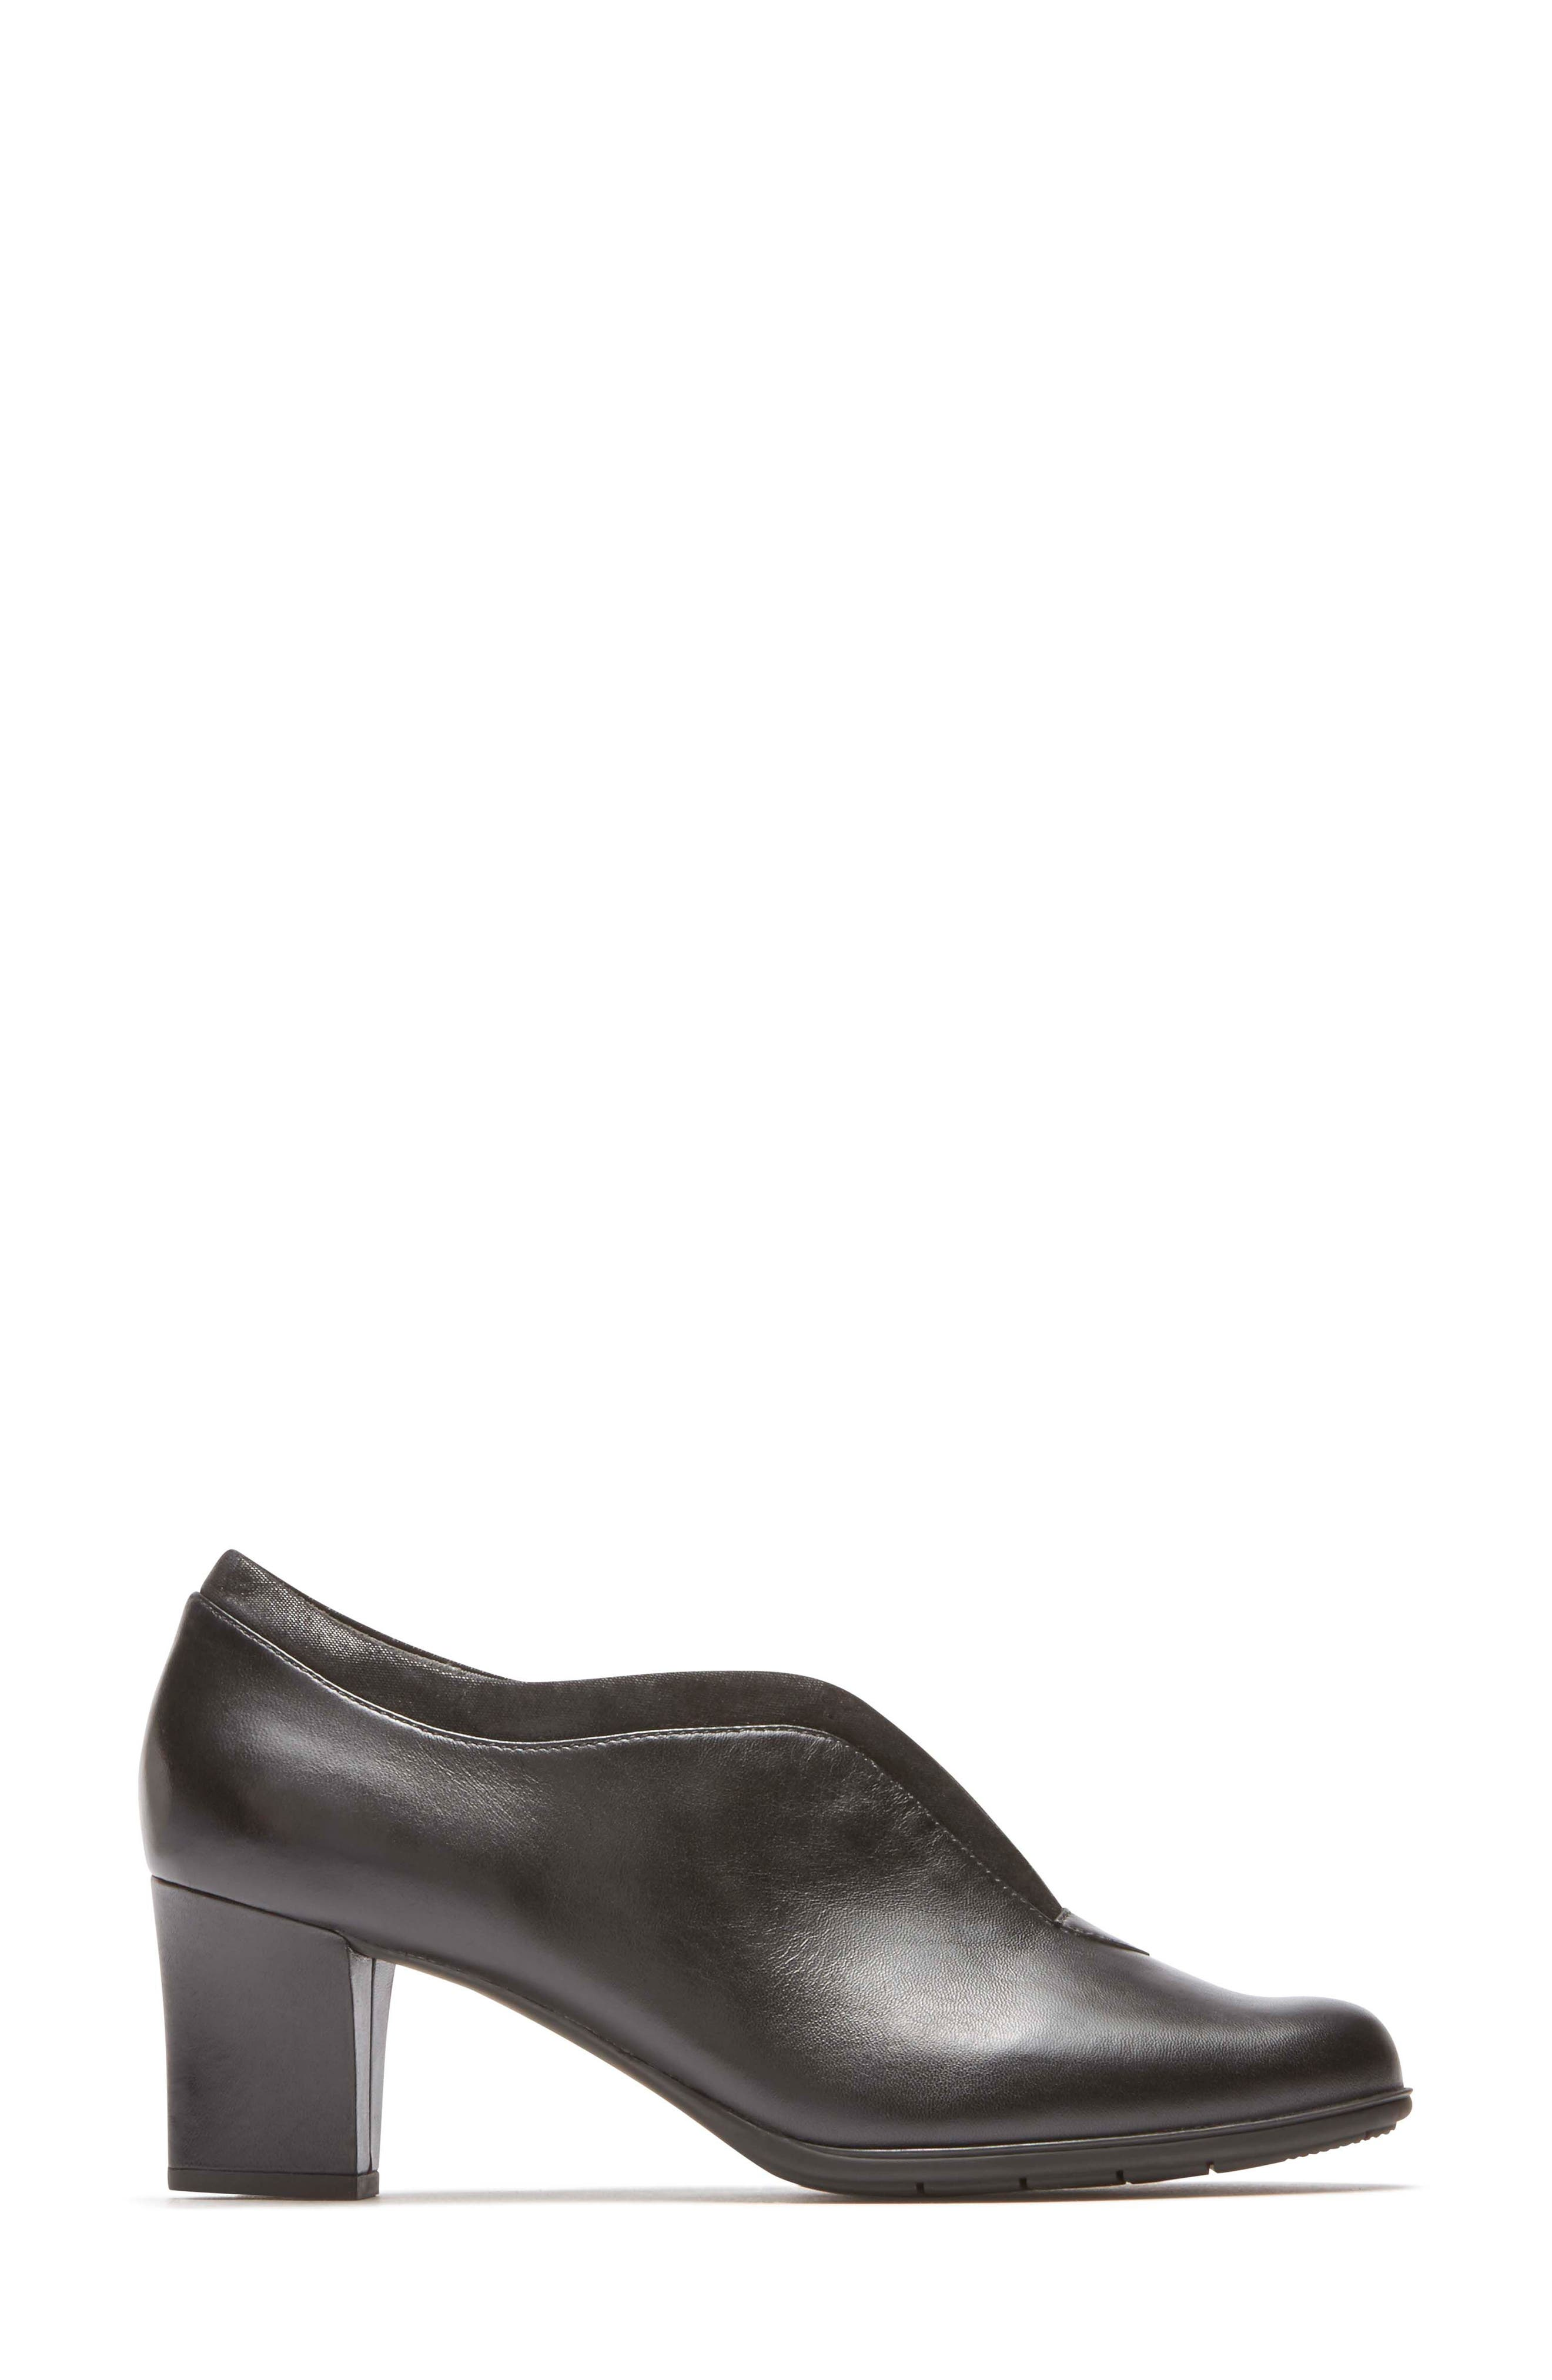 Esty Luxe Pump,                             Alternate thumbnail 3, color,                             BLACK LEATHER